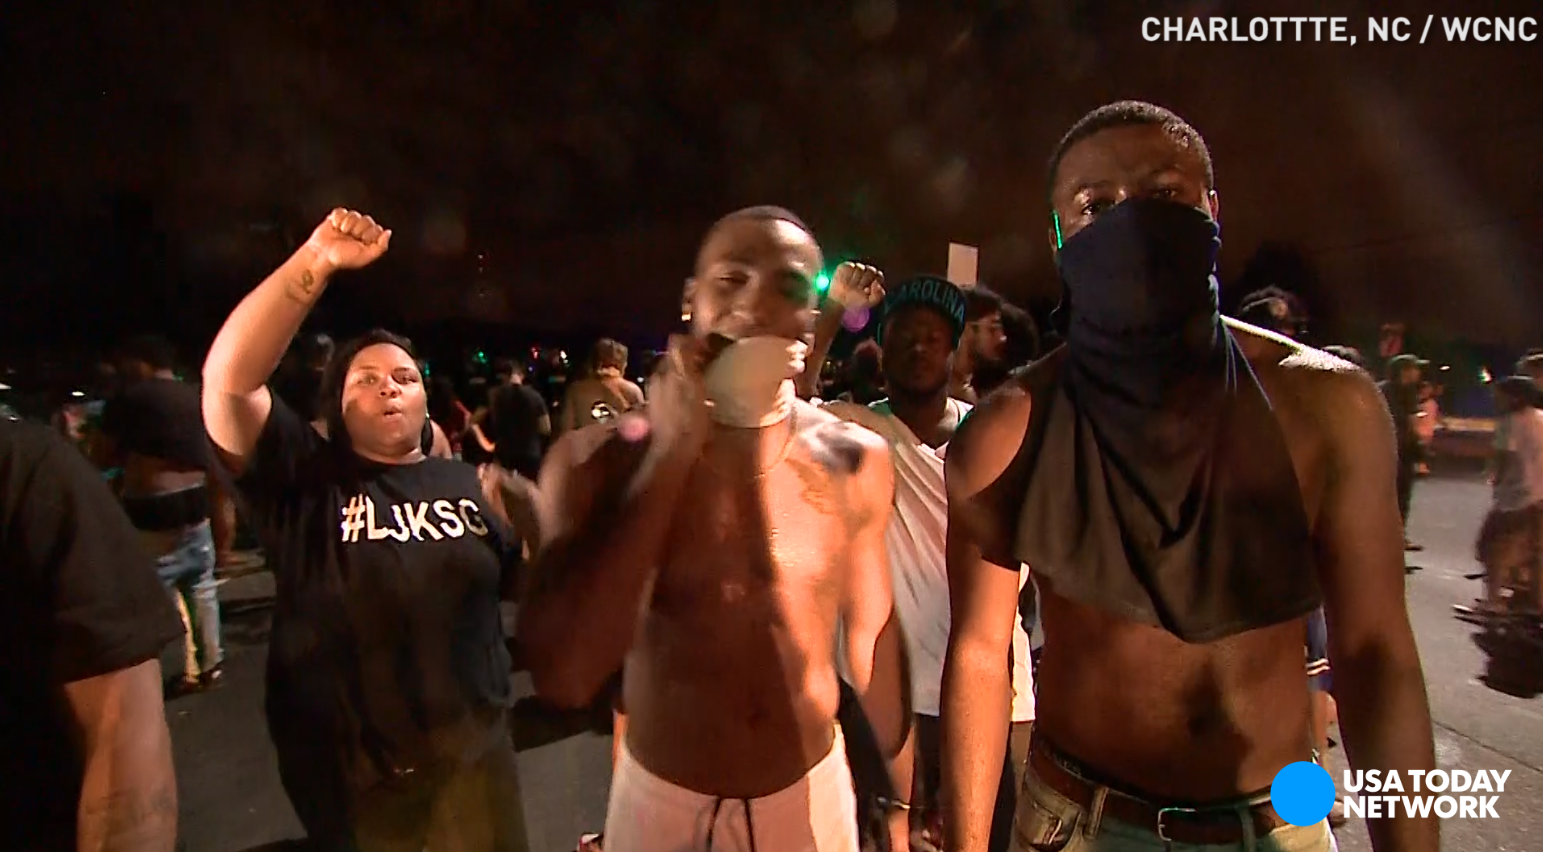 Charlotte police shooting ignites violent protests